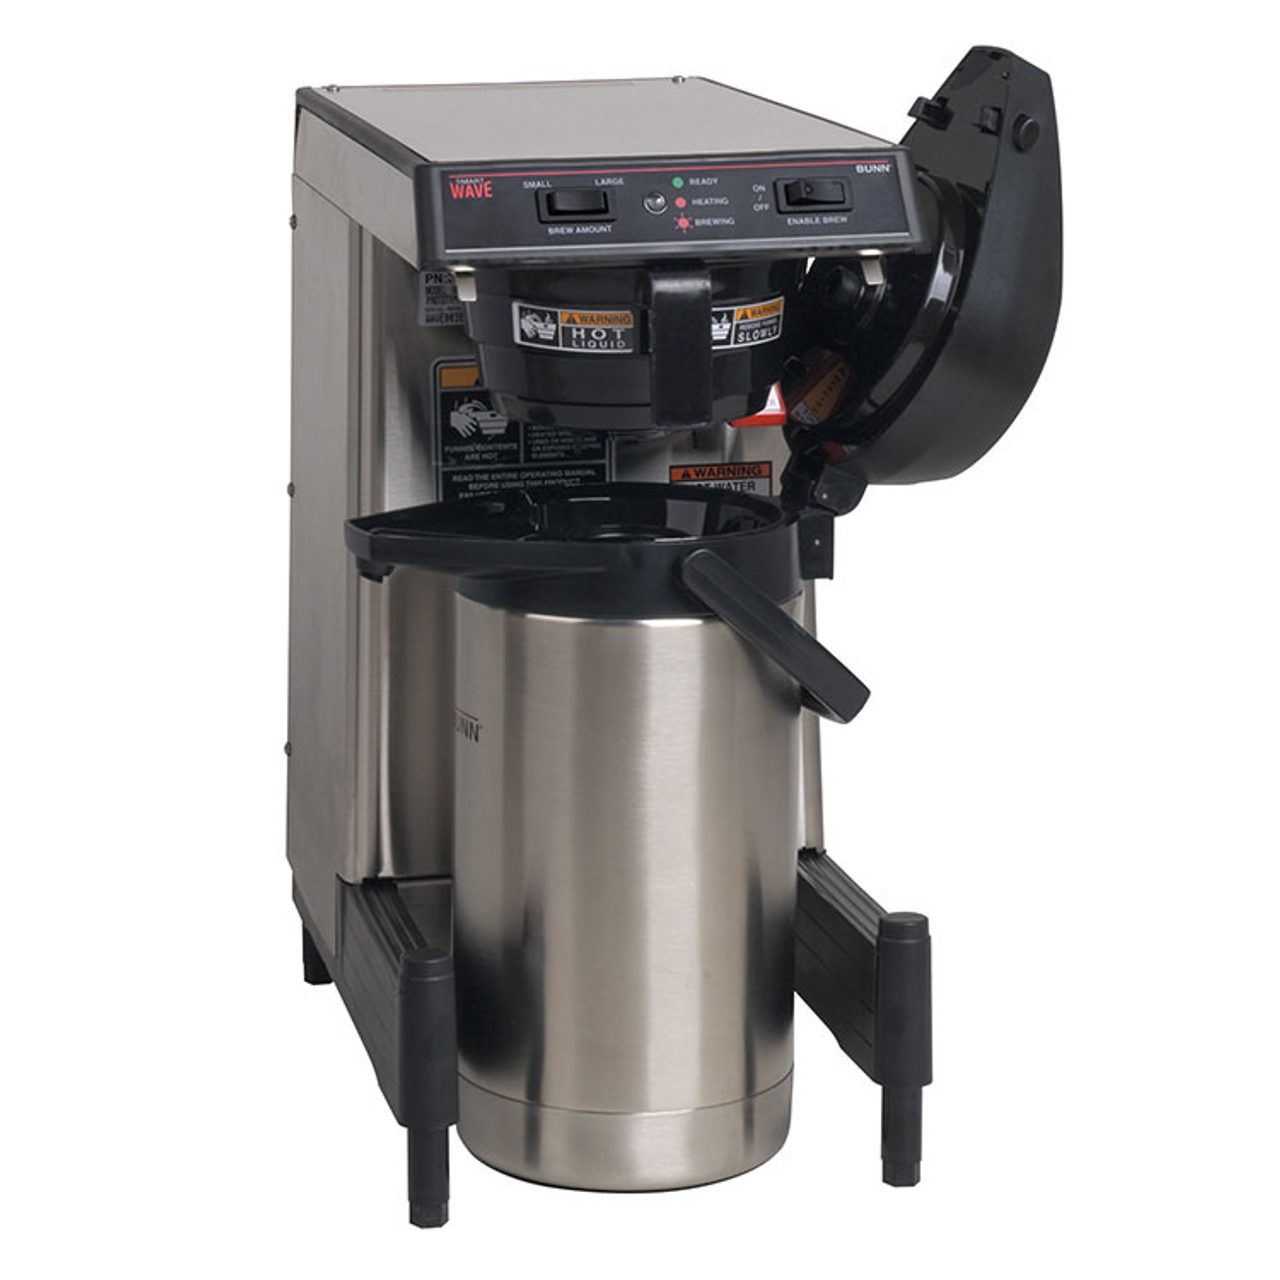 39900.0006  WAVE15-APS SmartWave® Low Profile Wide Base Coffee Brewer, automatic, 3.9 gallon/hour capacity, black plastic funnel, brews into 1.9L thermal carafe brewer using slide-out booster tray, energy-saver mode, analog switches with red & green LED, (airpot sold separately), adjustable legs, 120v/60/1-ph, 1350w, 11.3 amps, cord attached, UL, NSF